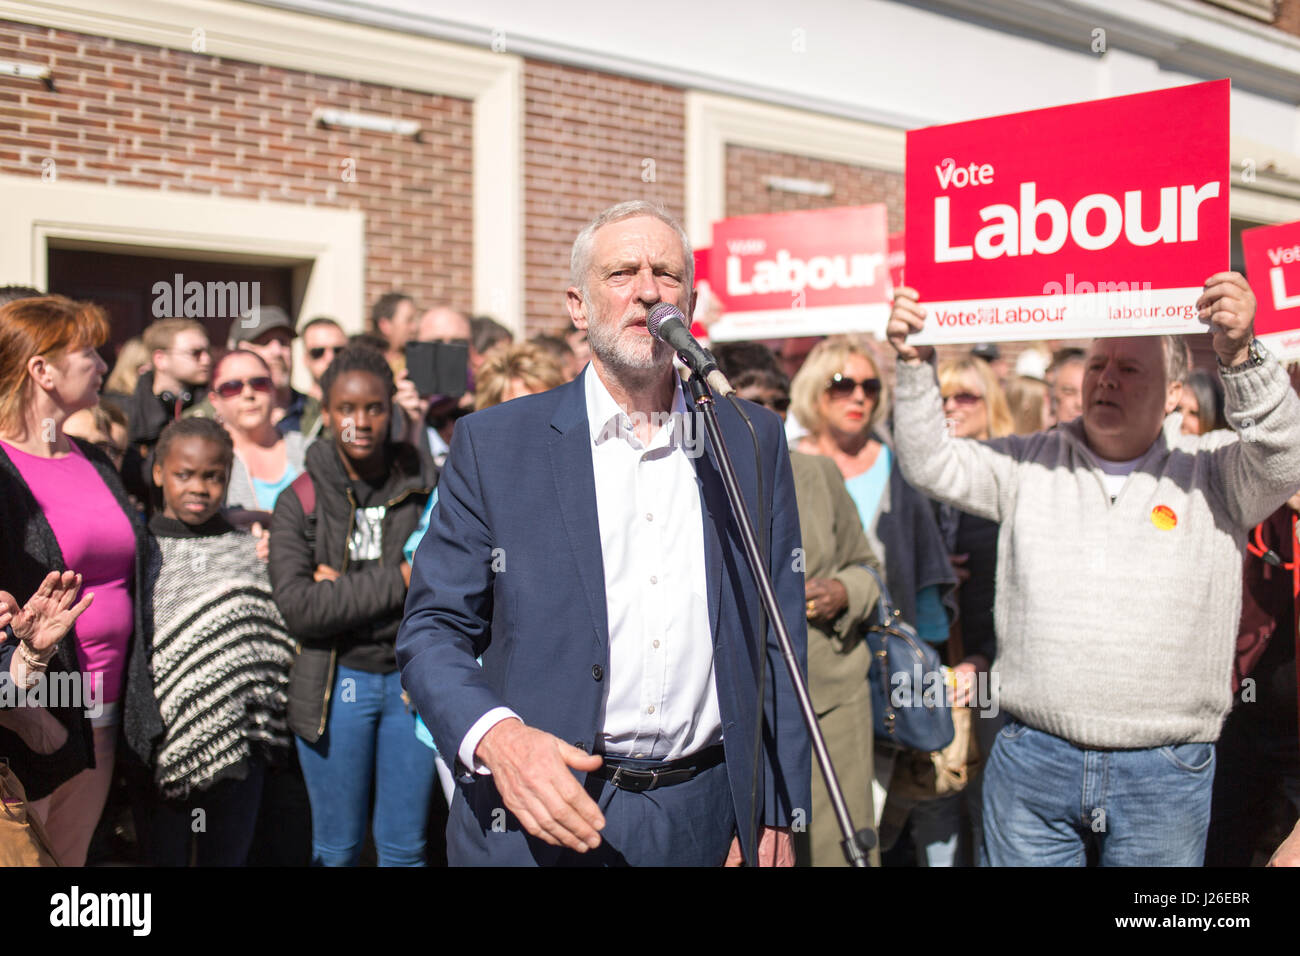 Labour Party leader JEREMY CORBYN visiting Crewe today (SATURDAY 22/4/17) as part of the Labour Party's general - Stock Image